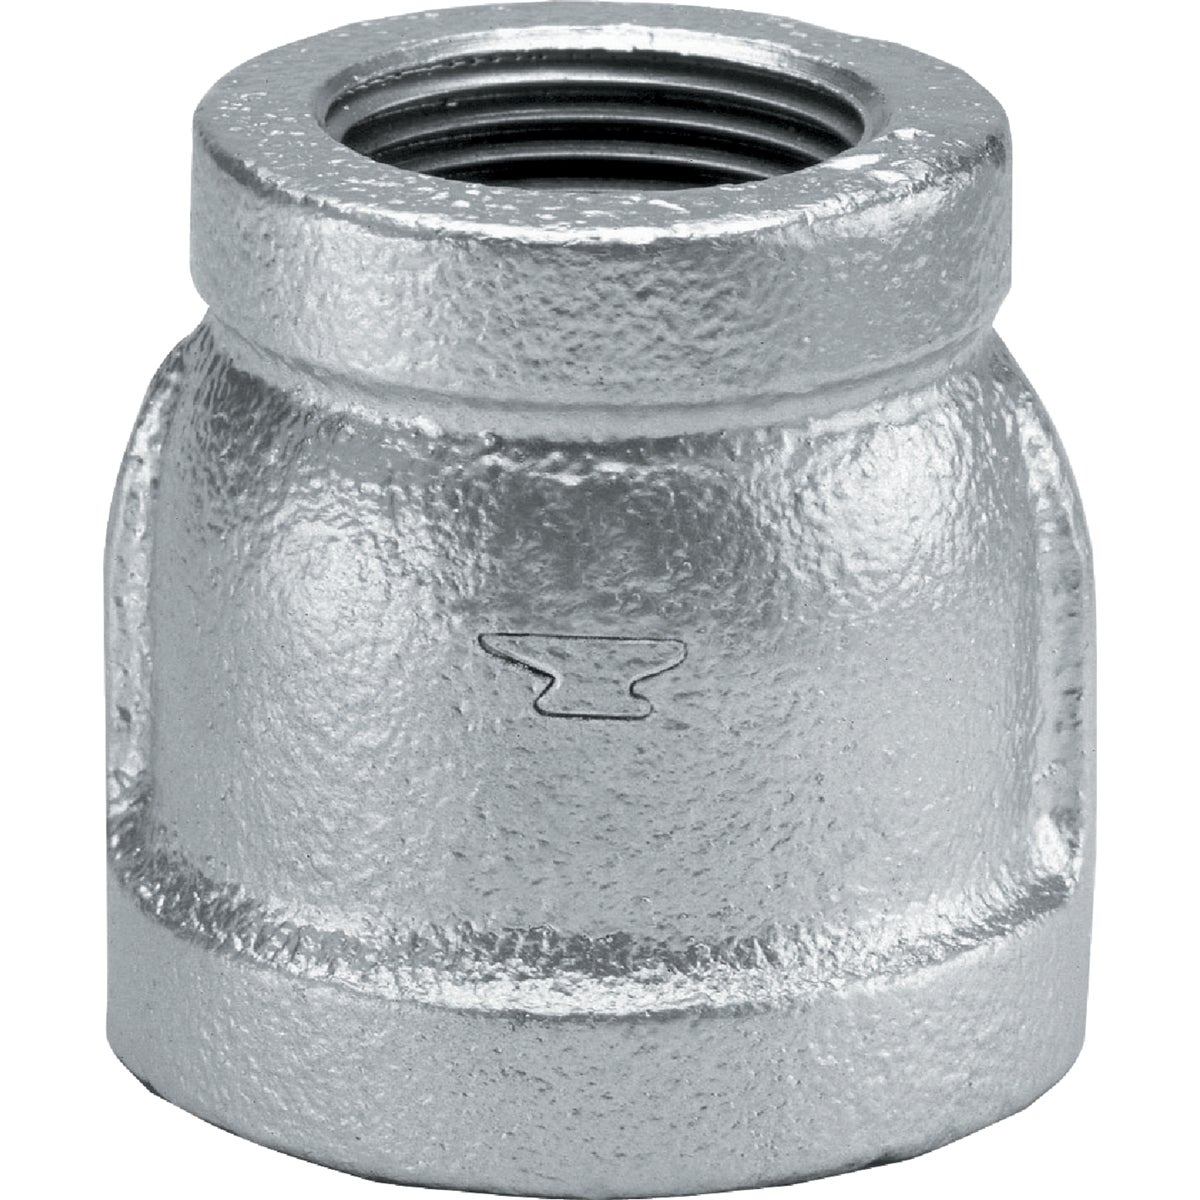 1/2X3/8 GALV COUPLING